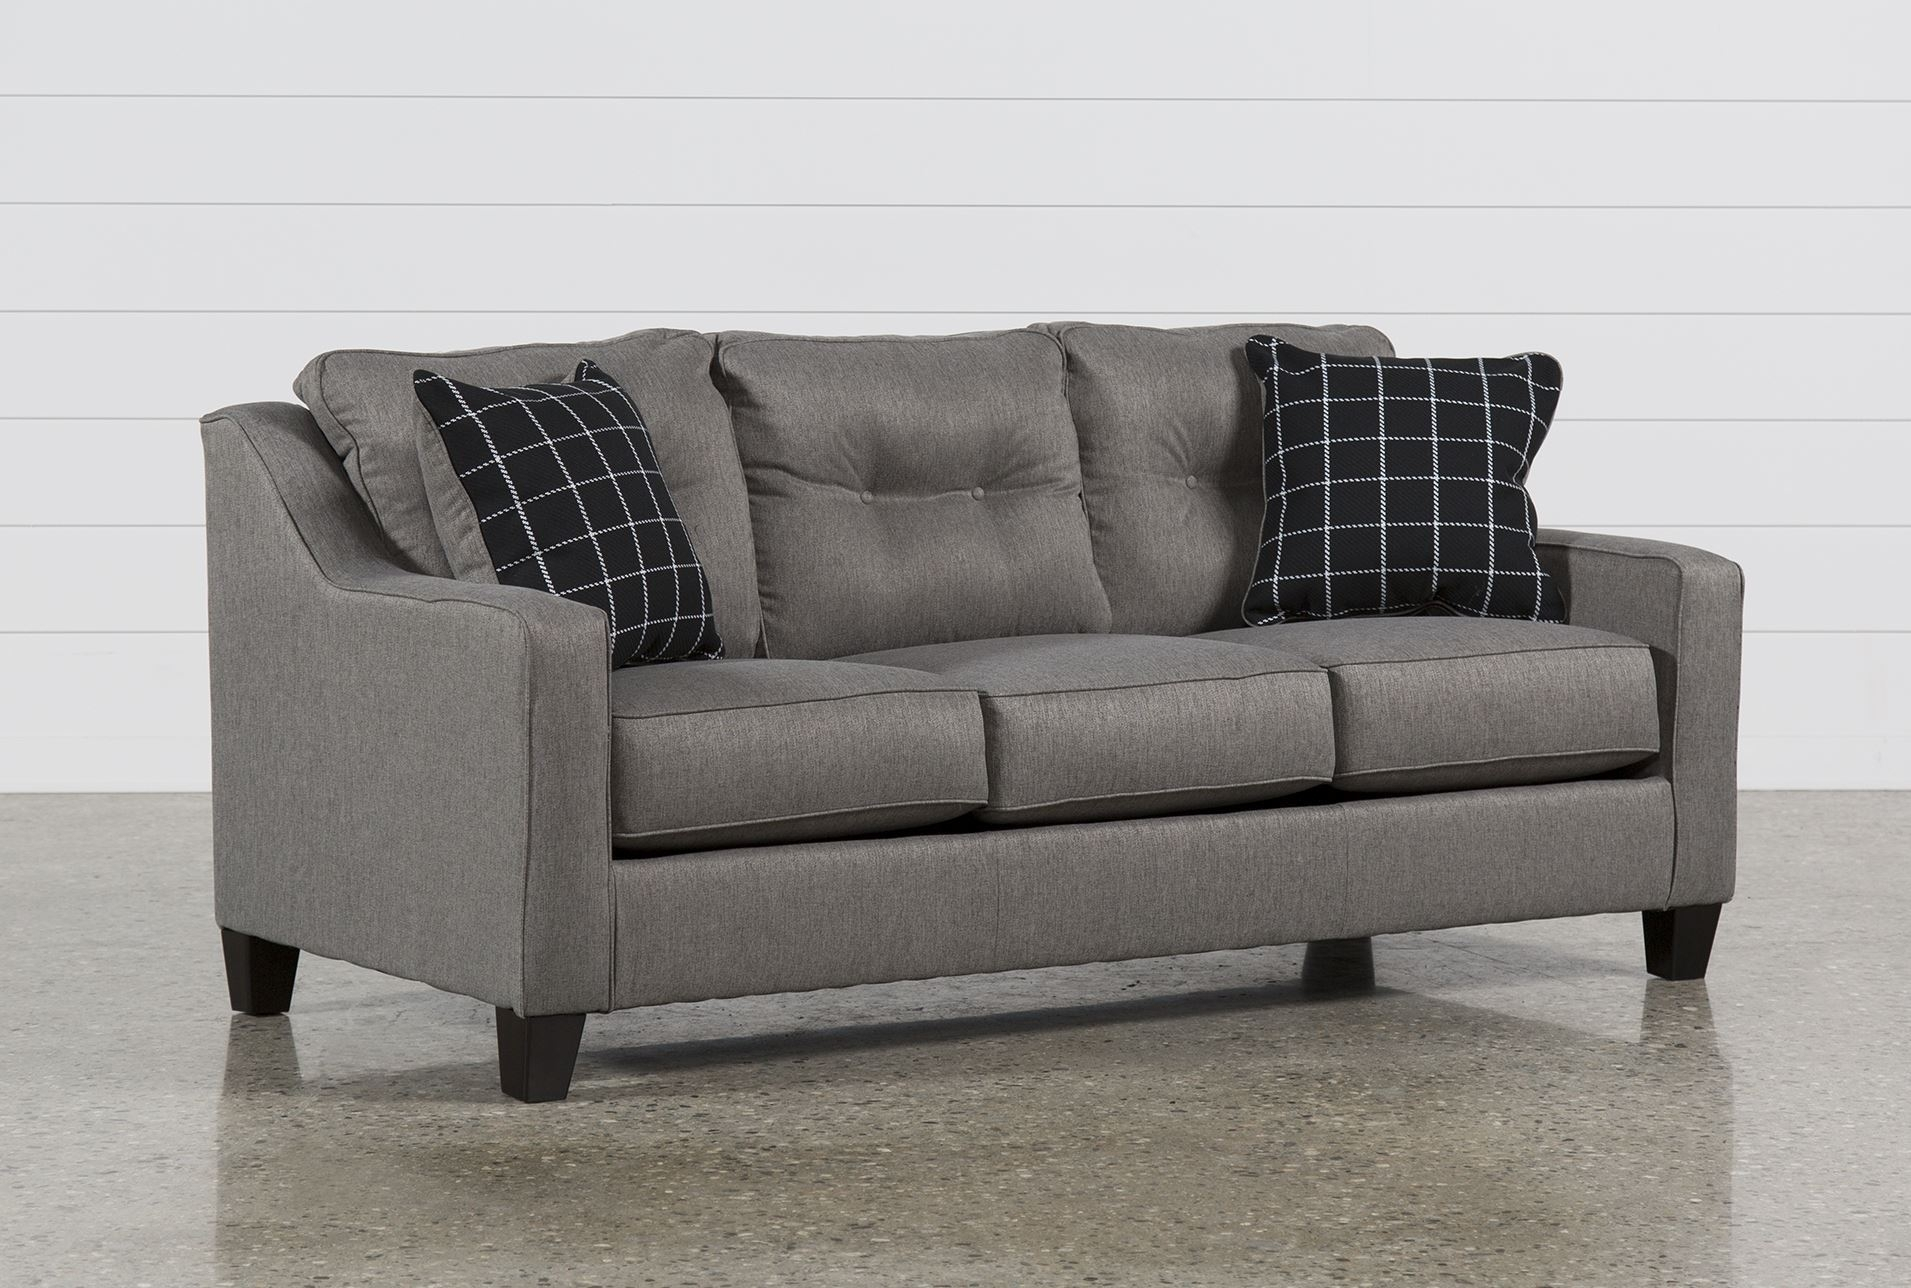 Living Spaces Sleeper Sofa – Home Decor 88 For Aspen 2 Piece Sleeper Sectionals With Raf Chaise (Image 15 of 25)